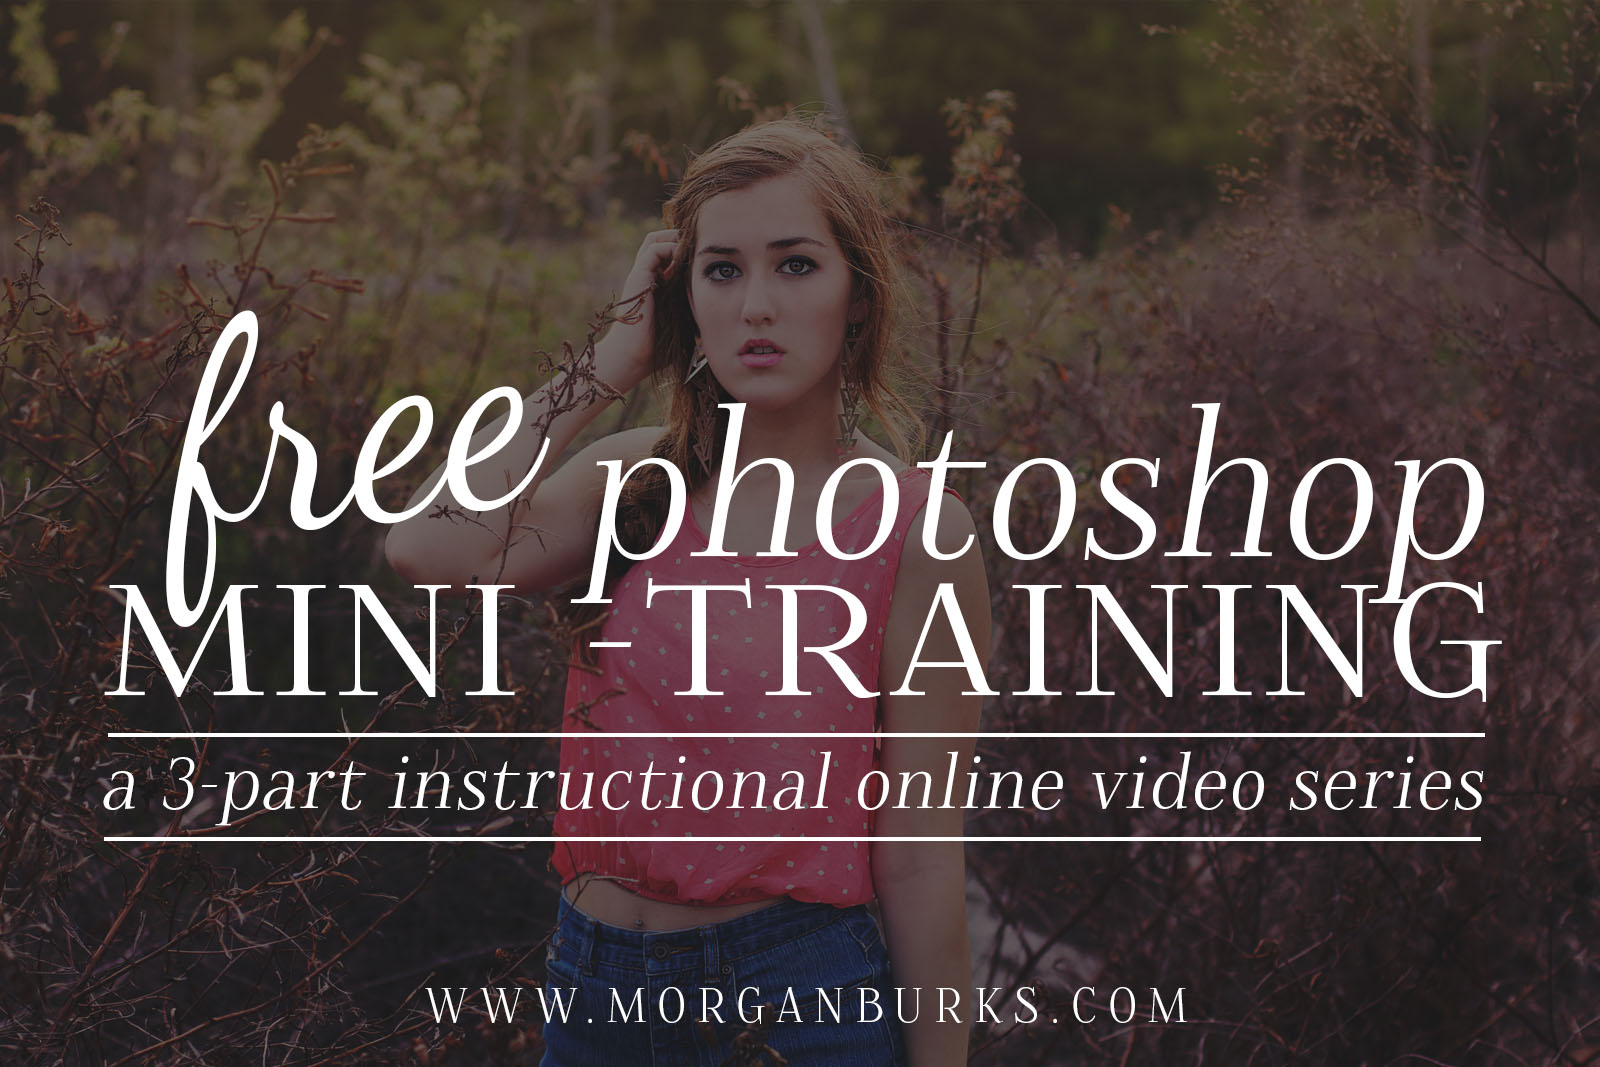 Free Photoshop Training for Photographers! Learn how to edit an image from start to finish using just ONE type of Adjustment in Photoshop. | Find more free tutorials and free editing products for photographers at www.morganburks.com